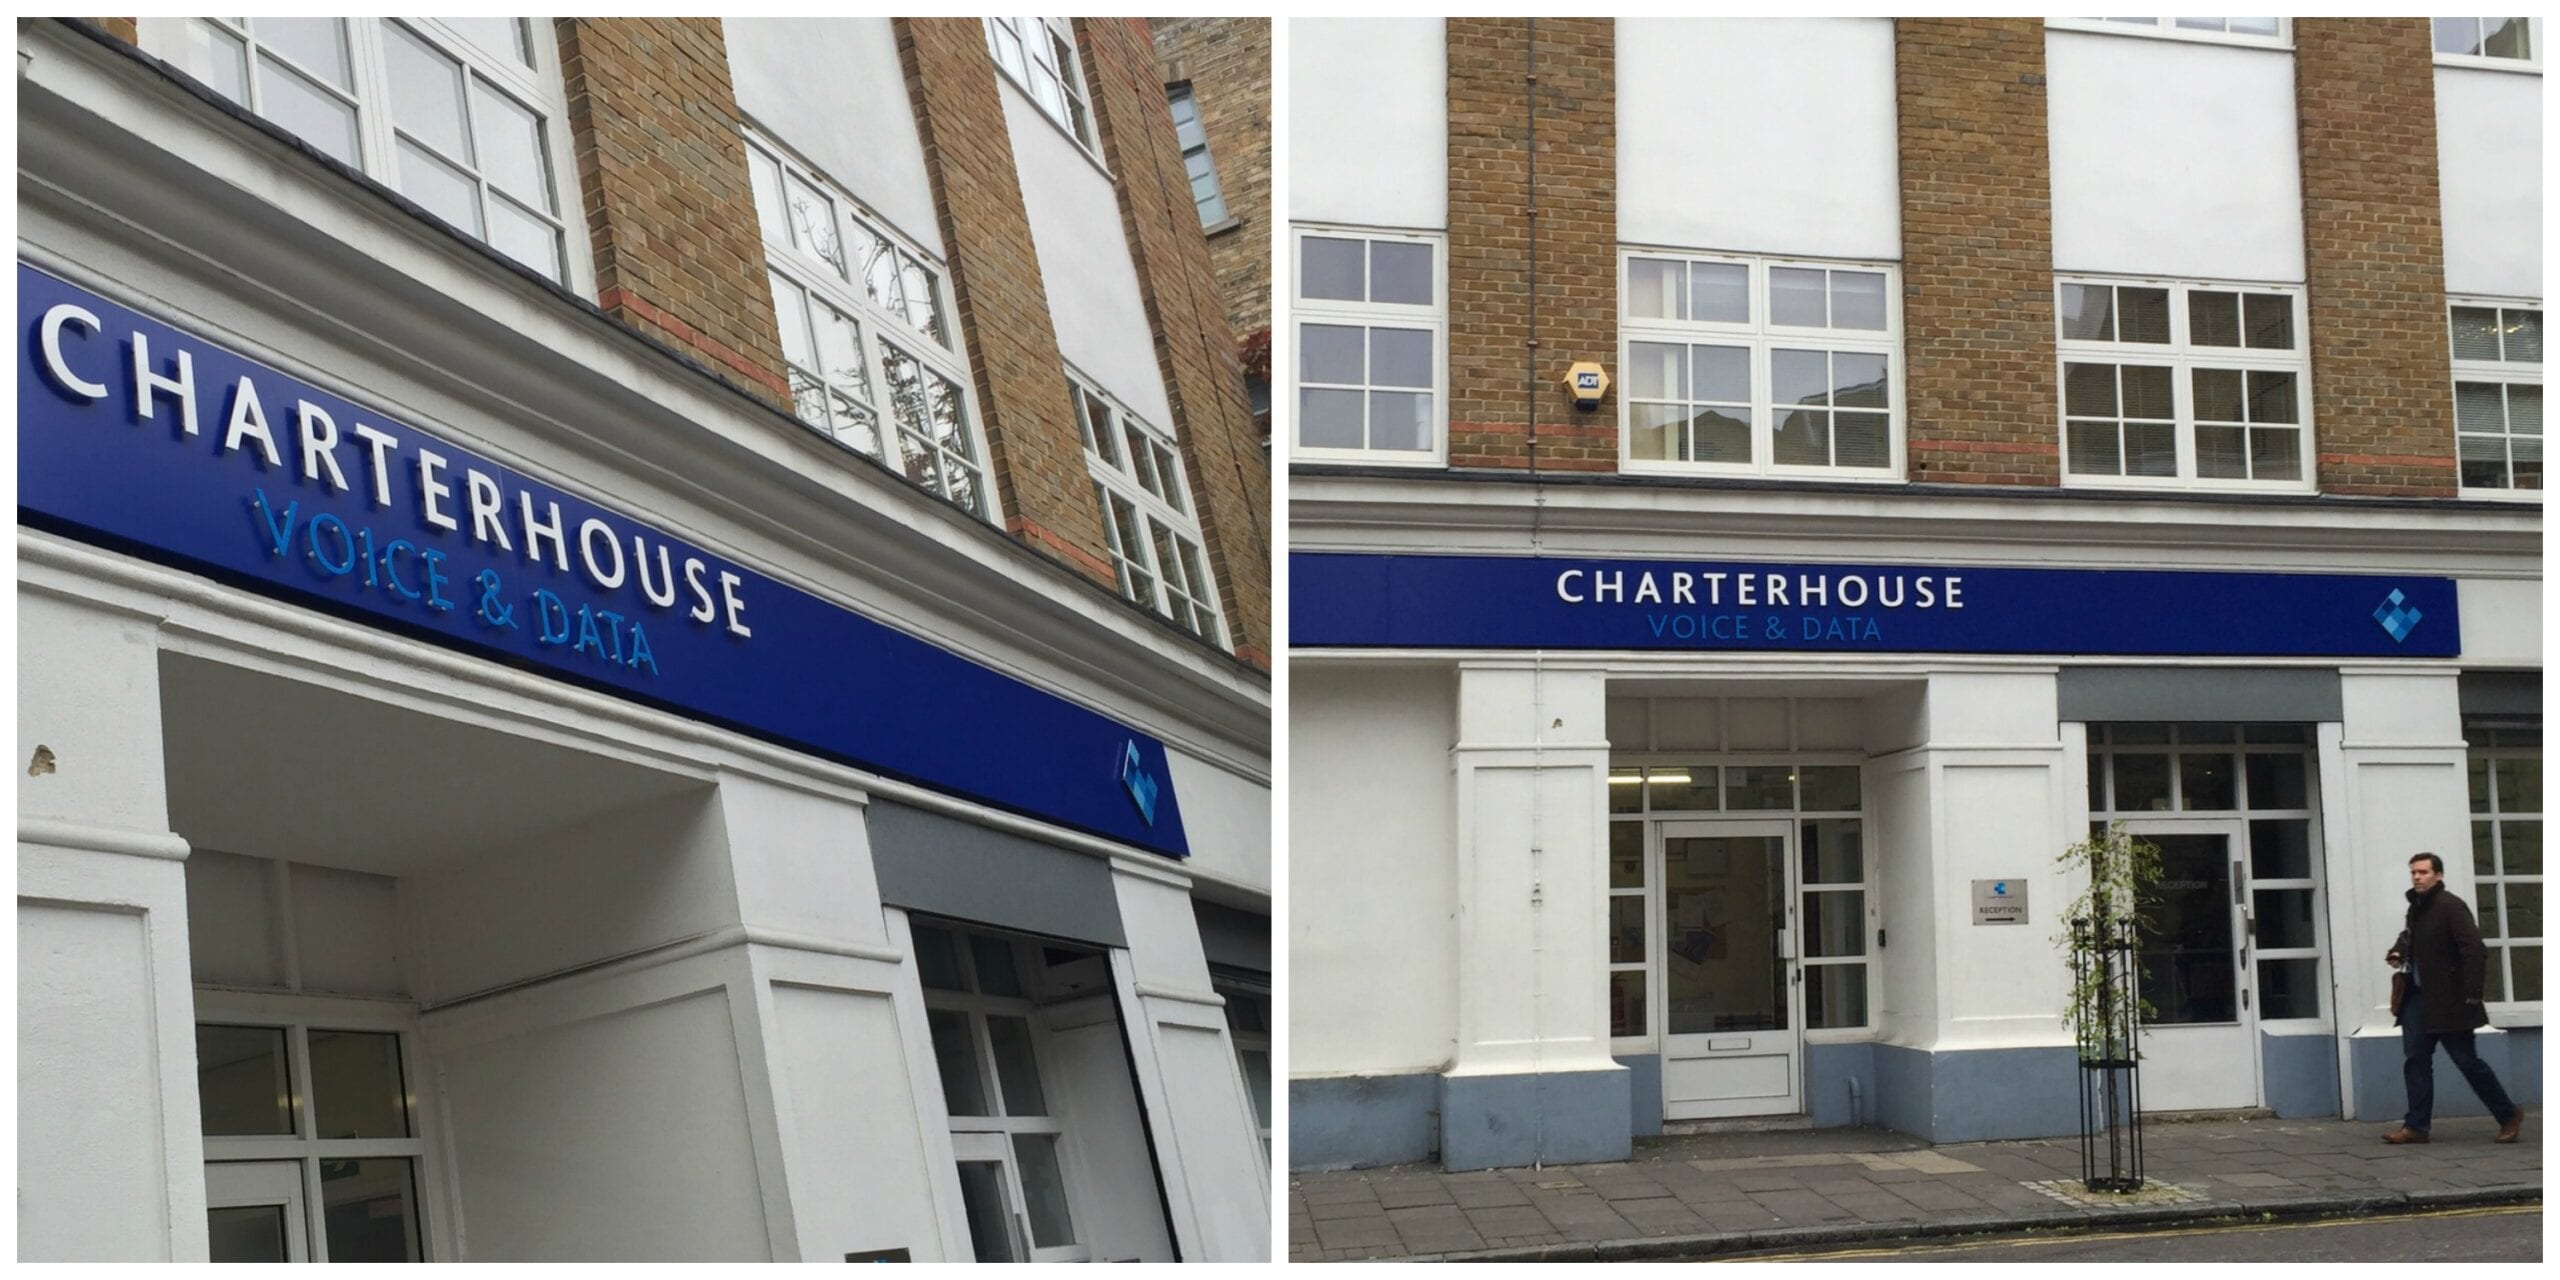 Charterhouse Voice and Data Shoreditch flat cut letters deluxe fascia